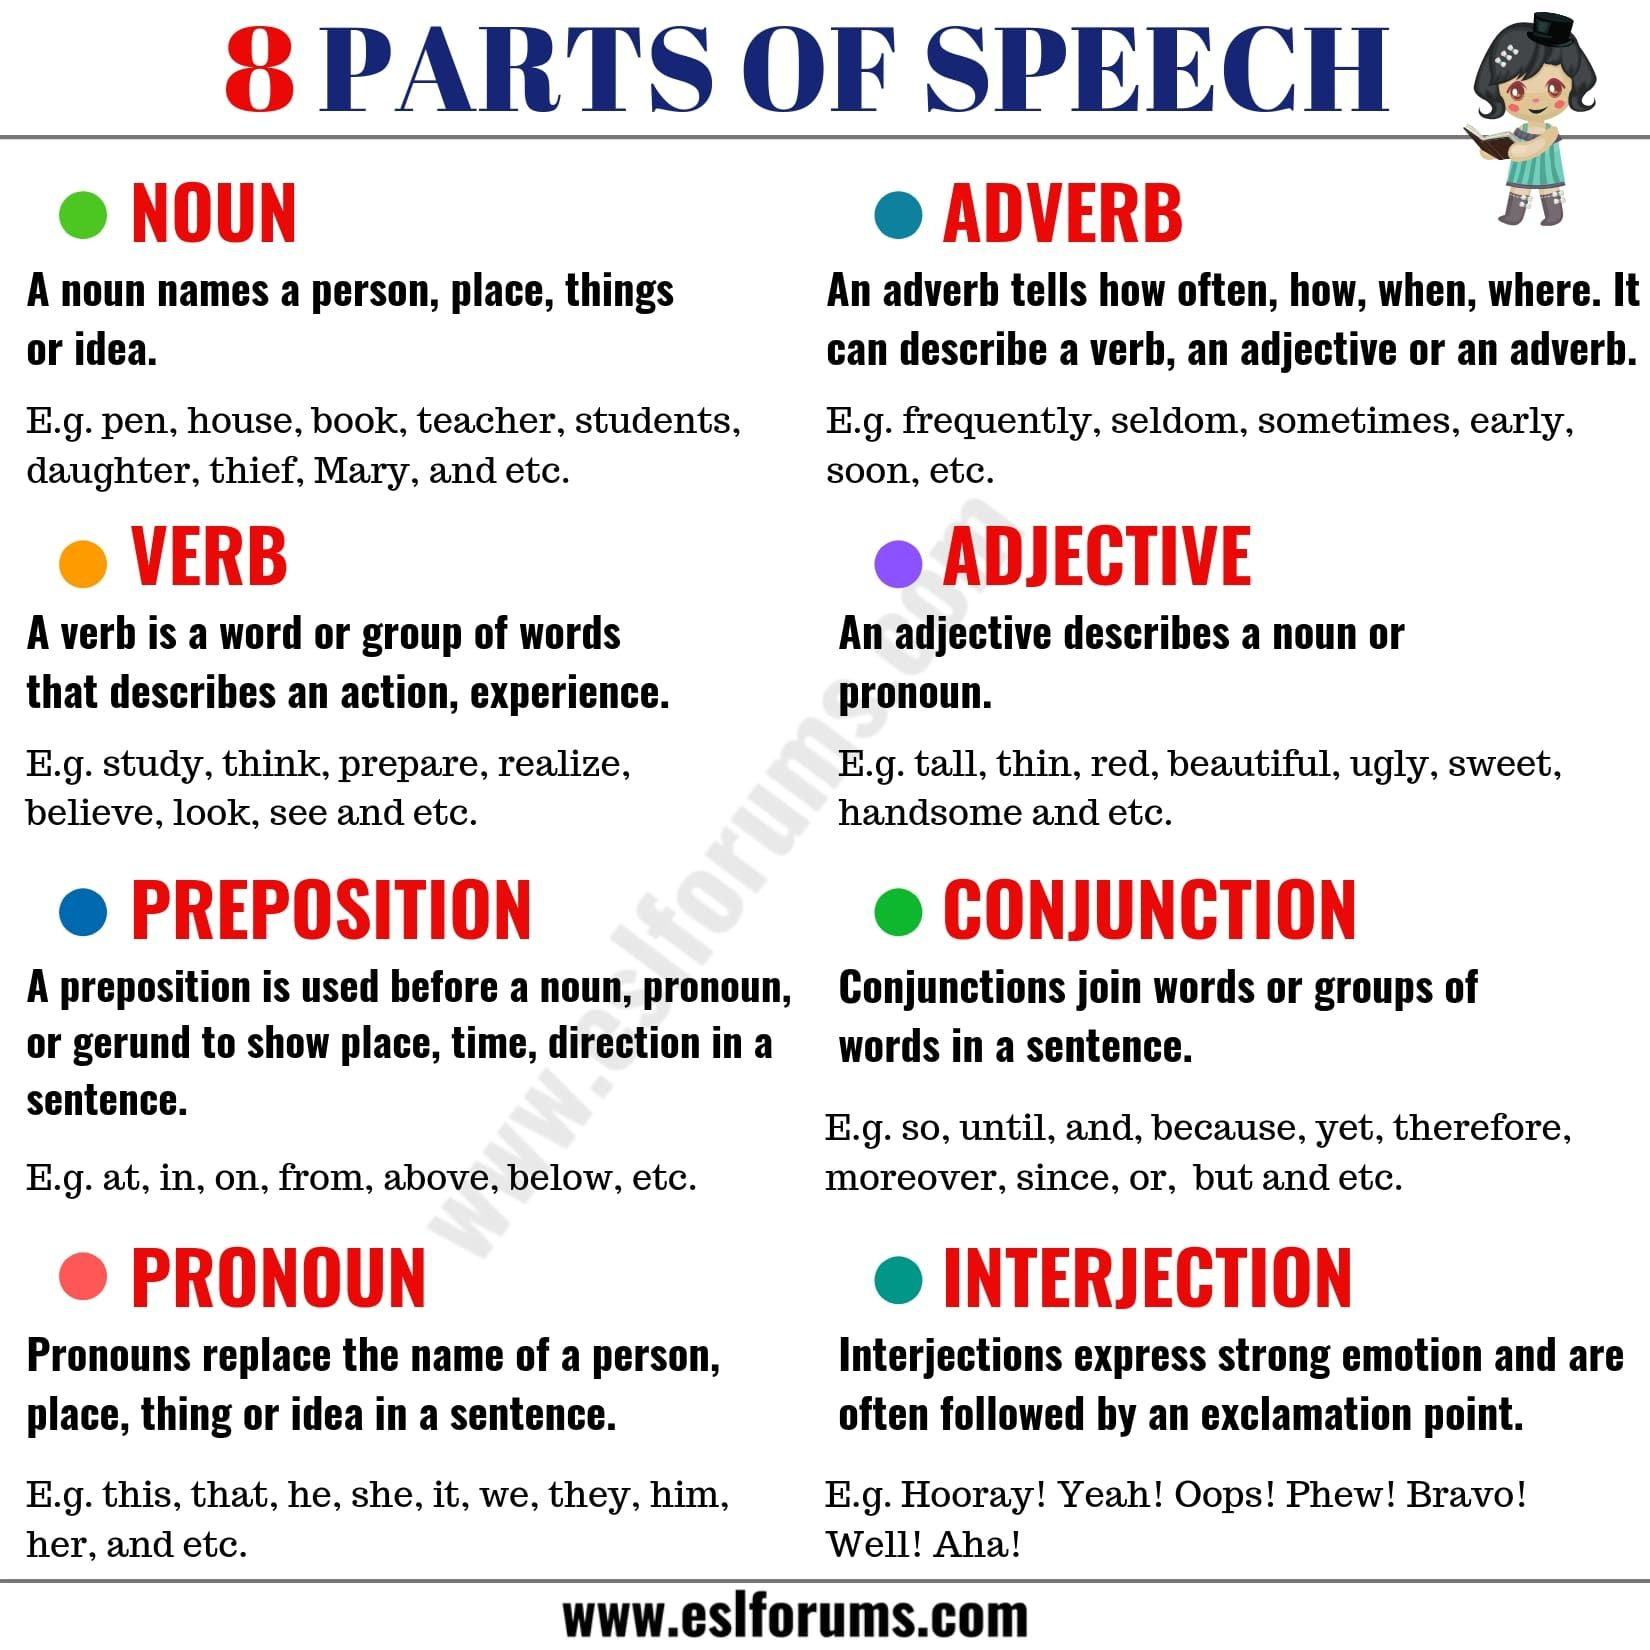 8 Parts Of Speech With Meaning And Examples